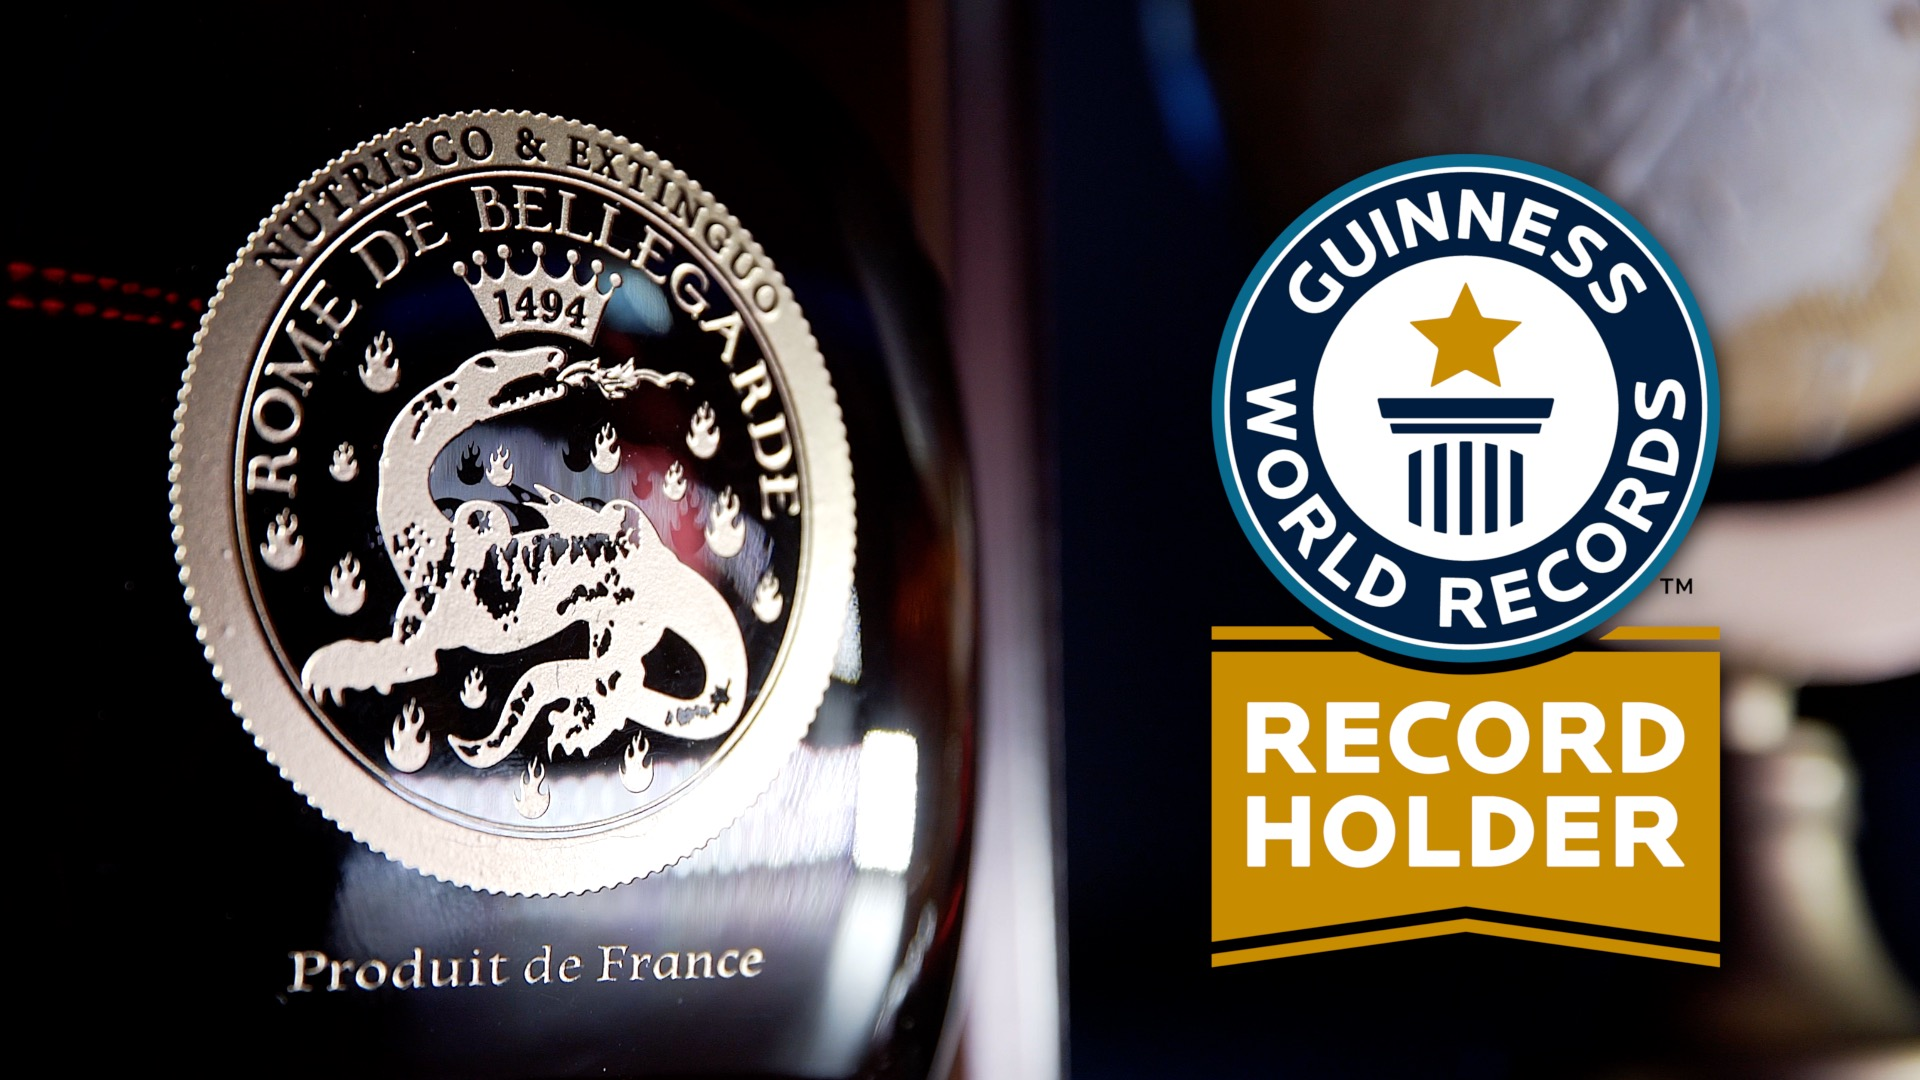 Rome De Bellegarde - Guiness World Record screen